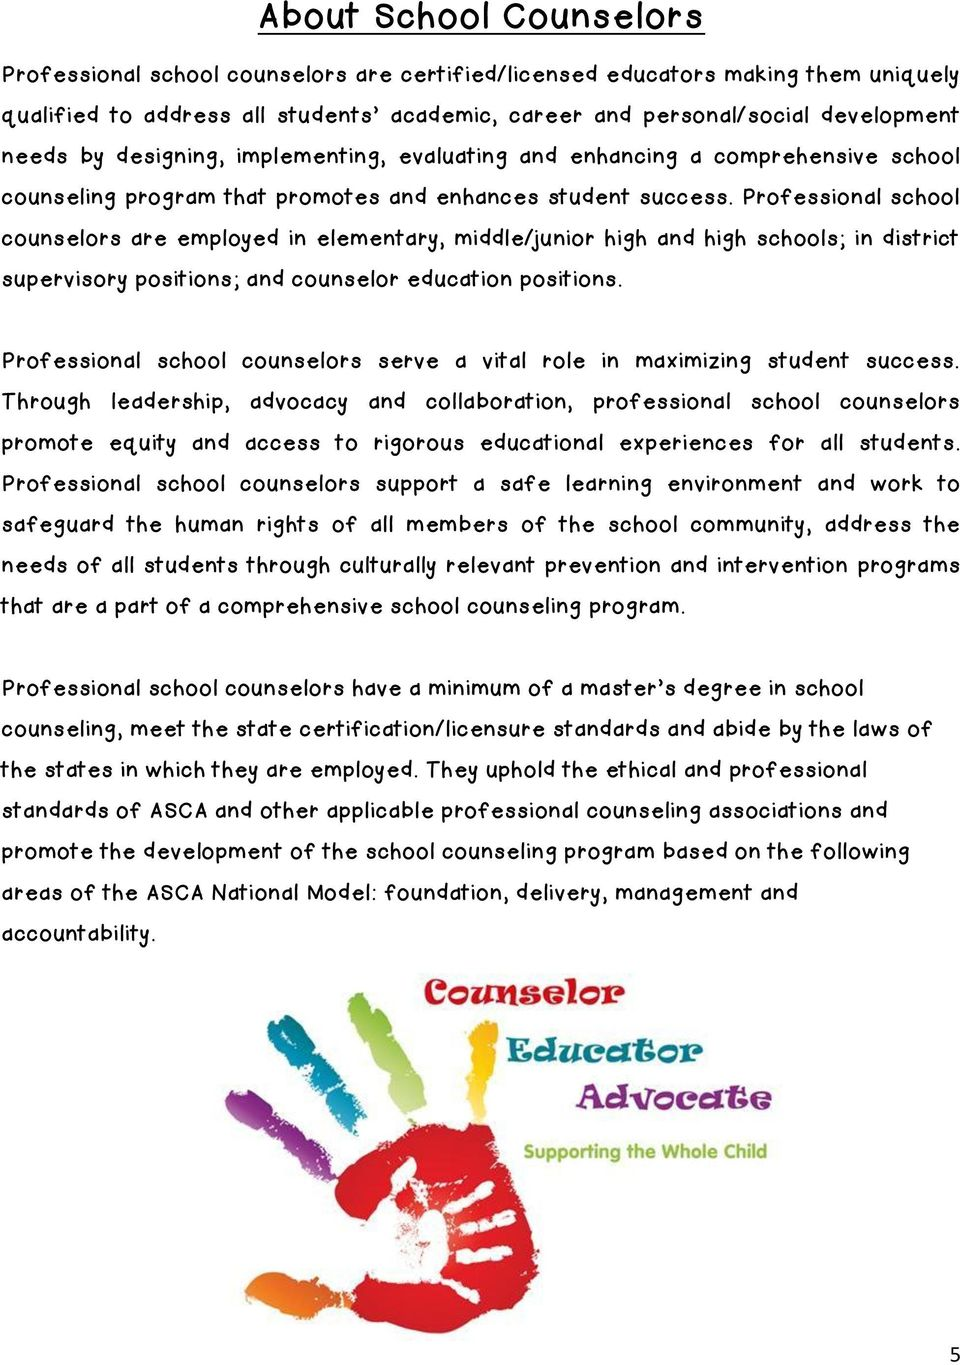 Professional school counselors are employed in elementary, middle/junior high and high schools; in district supervisory positions; and counselor education positions.